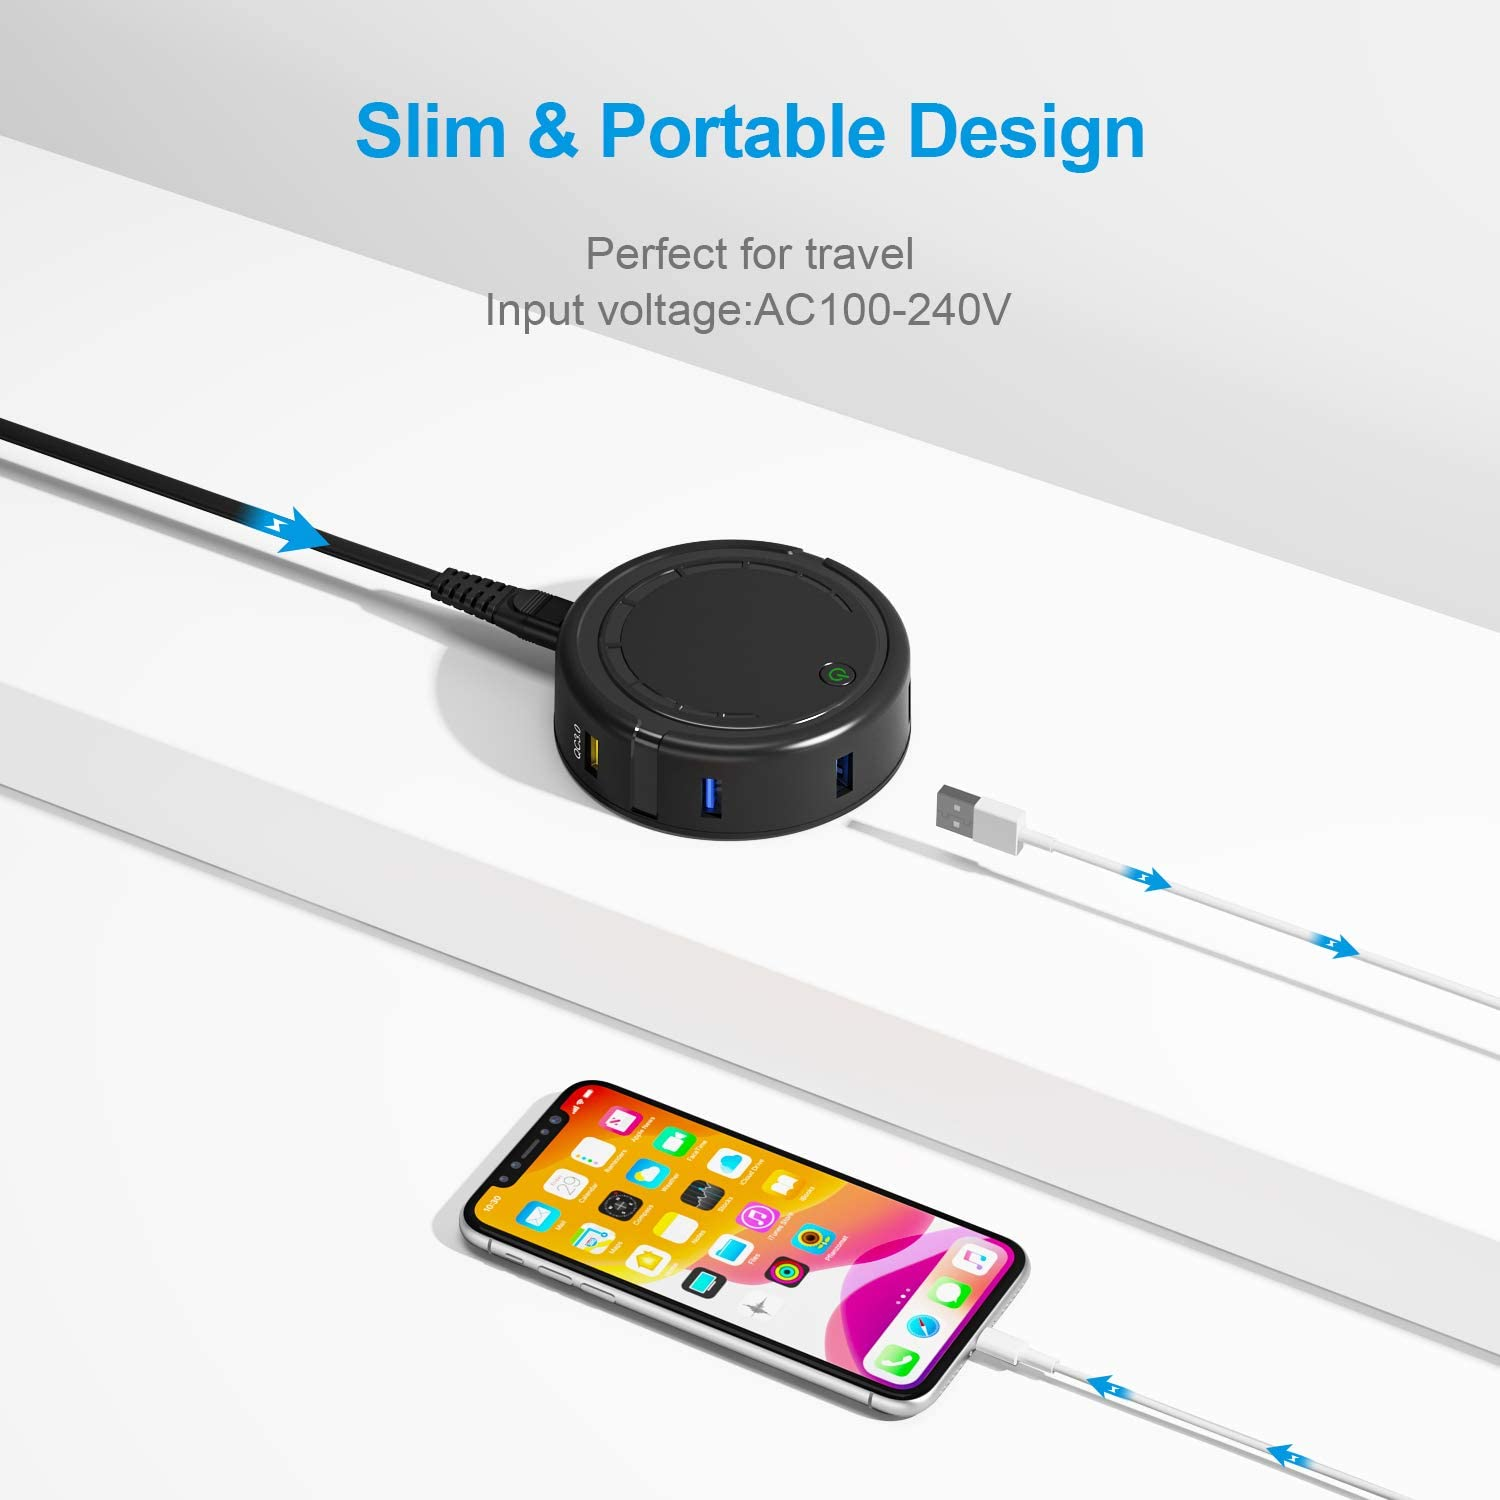 Nexus iPad Pro//Air HTC and More LG 30W USB Wall Charger Bototek Quick Charge 3.0 6-Port USB Charger Desktop Charging Station Dock /& Organizer for Samsung iPhone 11//11 Pro//Max